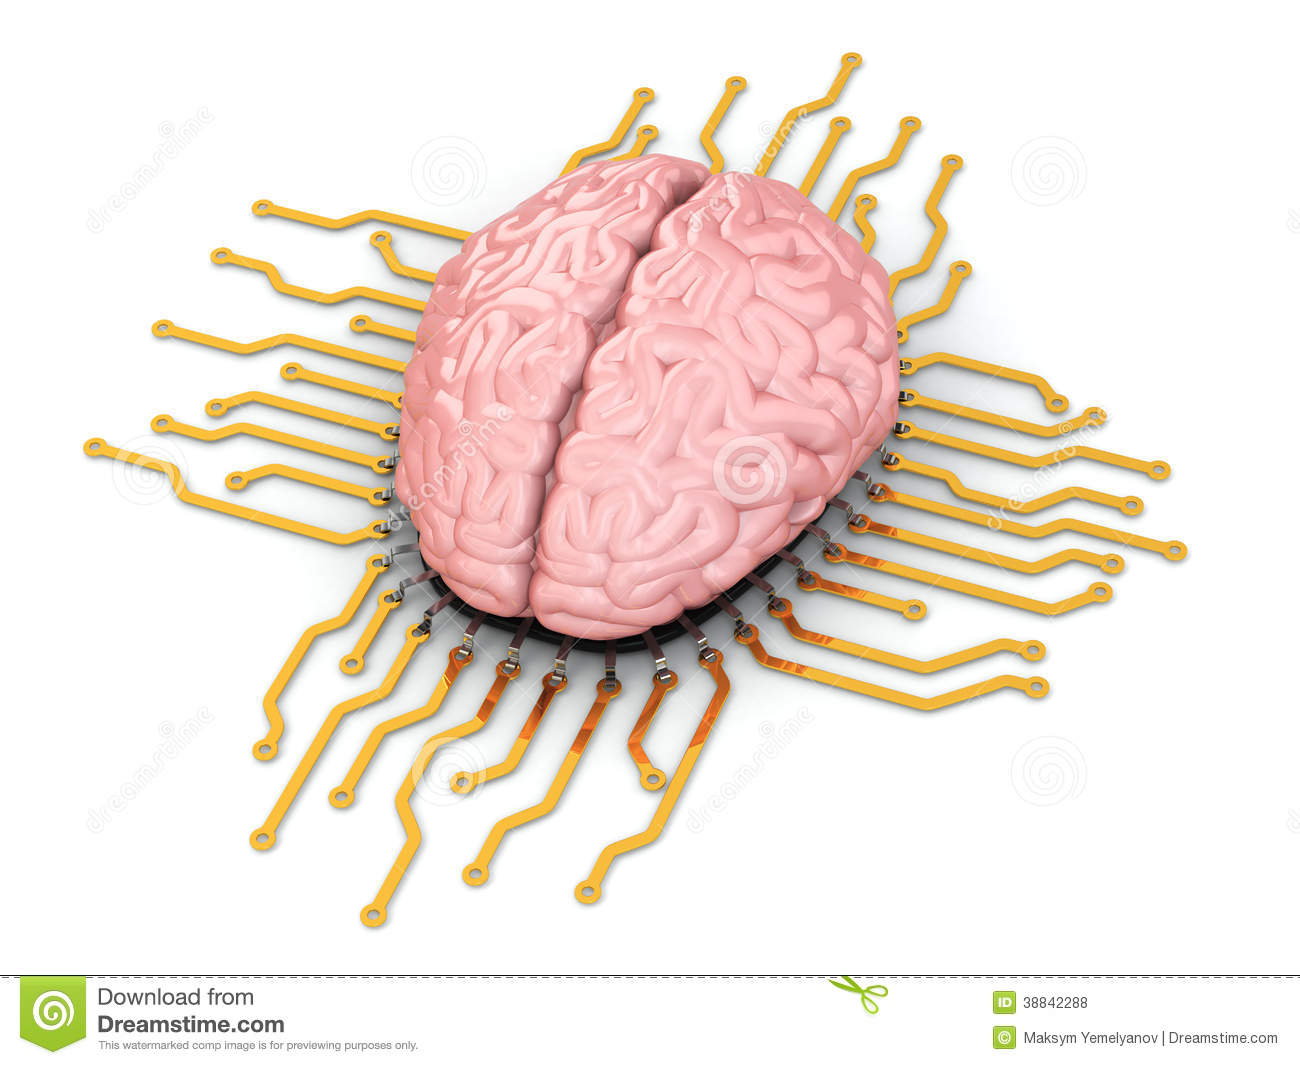 Human Brain As Computer Chip  Concept Of CPU  Stock Illustration